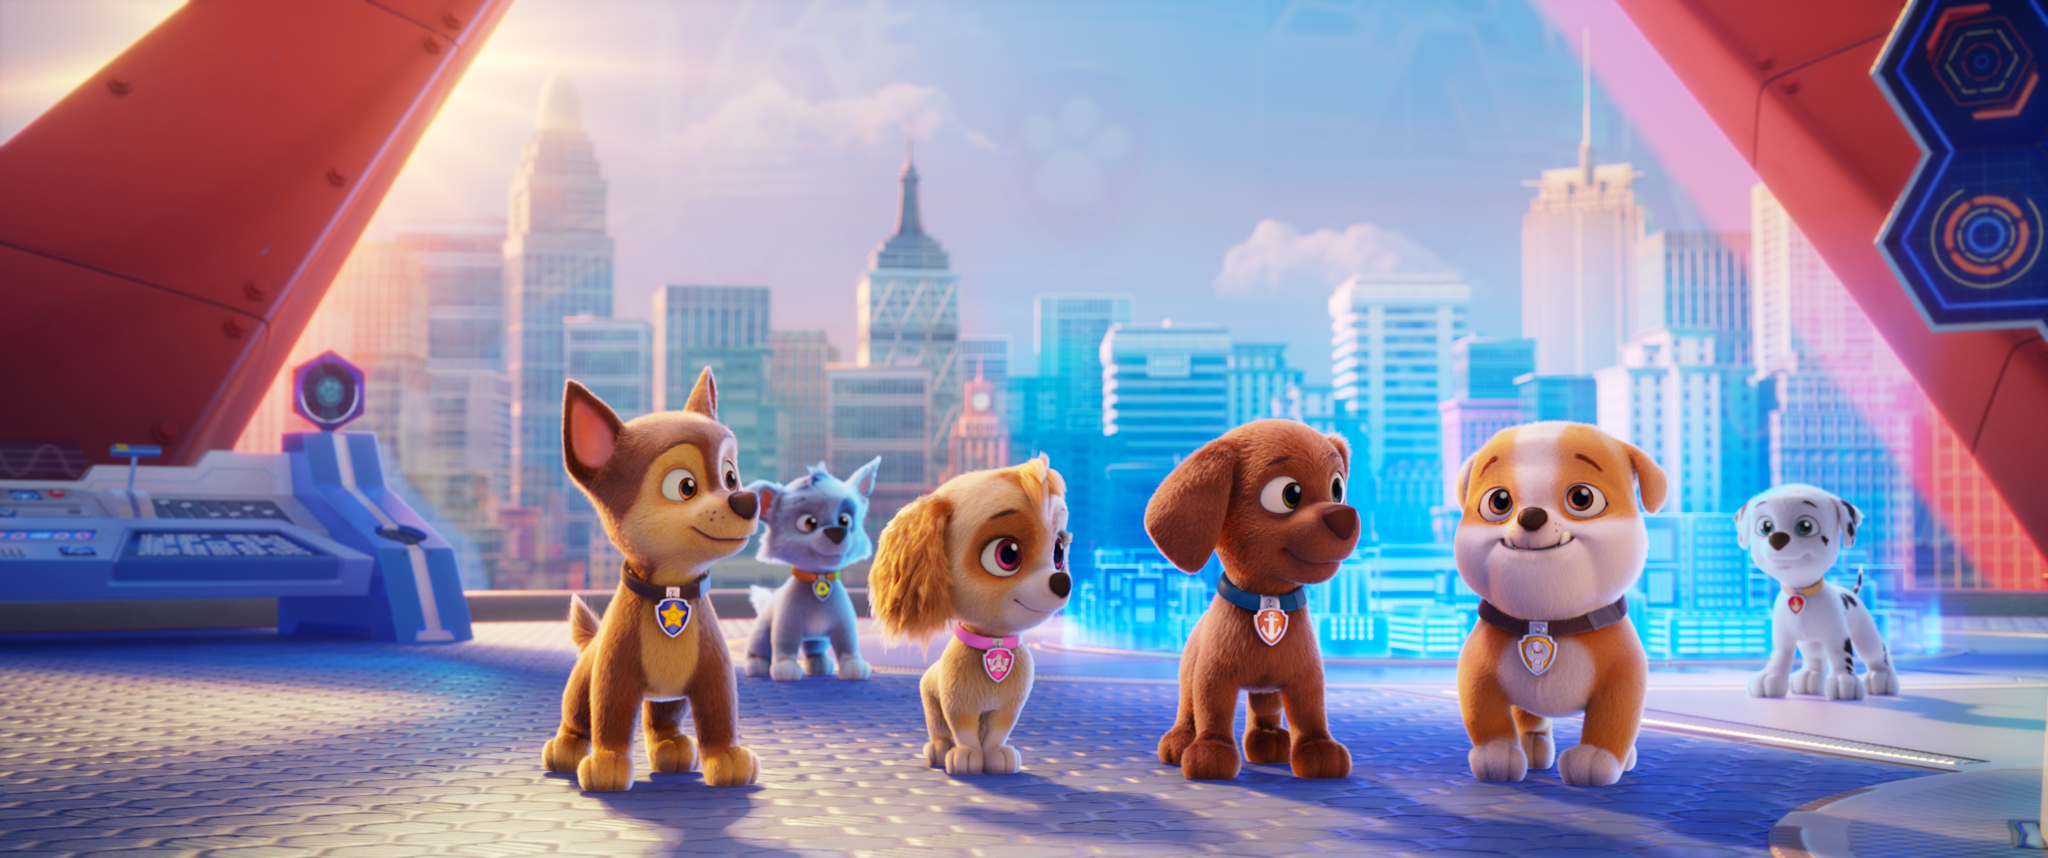 Paw Patrol Movie Parents Guide Review